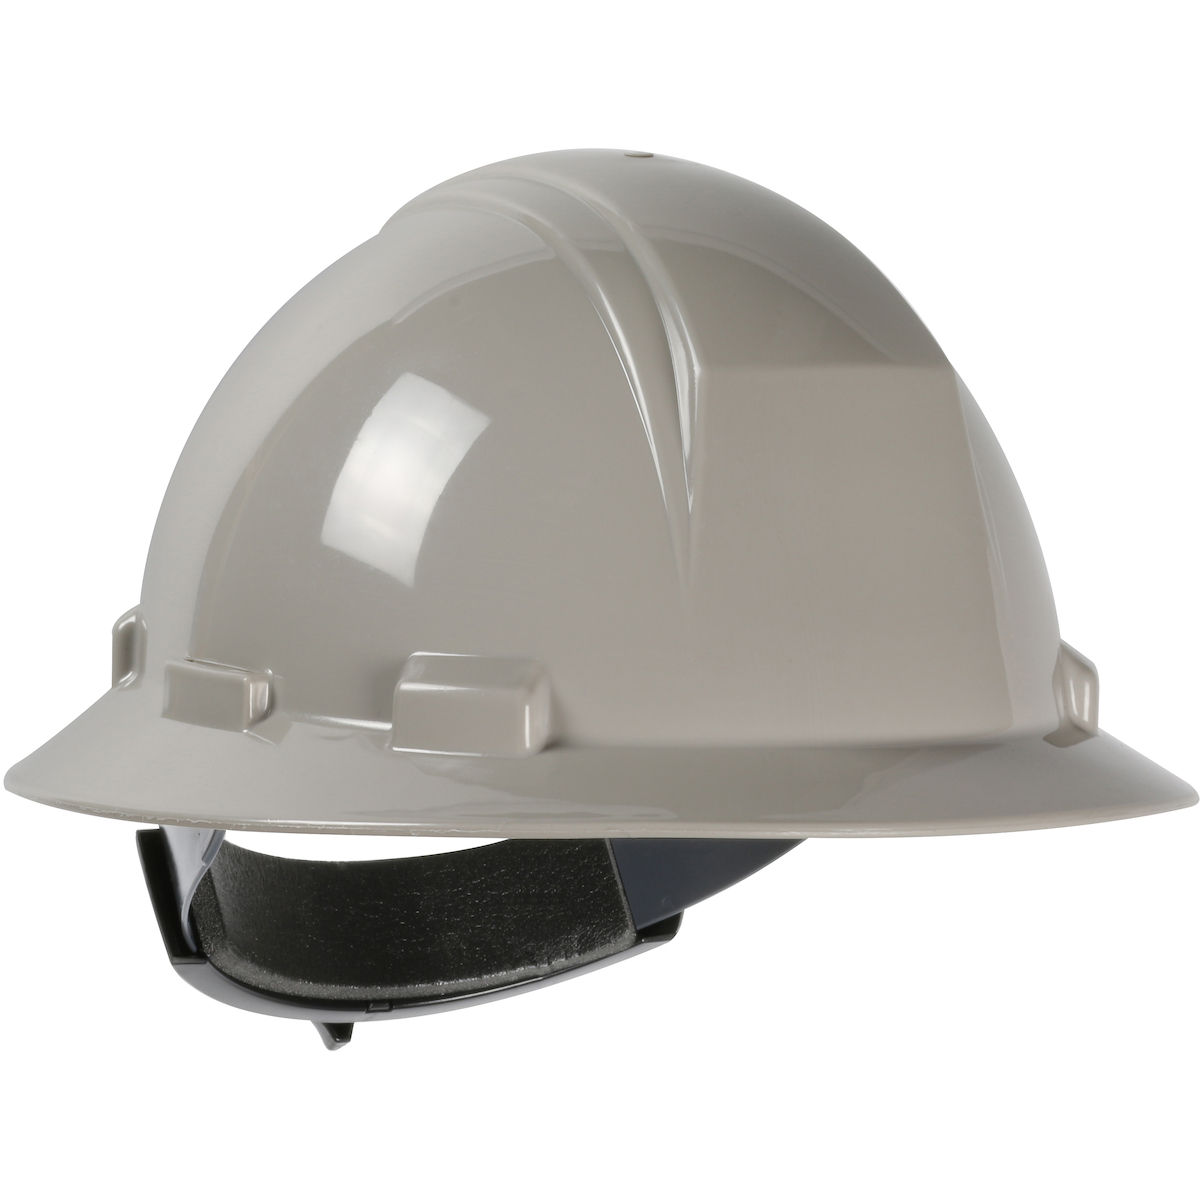 Type II Full Brim Hard Hat with HDPE Shell, 4-Point Textile Suspension and Wheel Ratchet Adjustment, Gray, OS